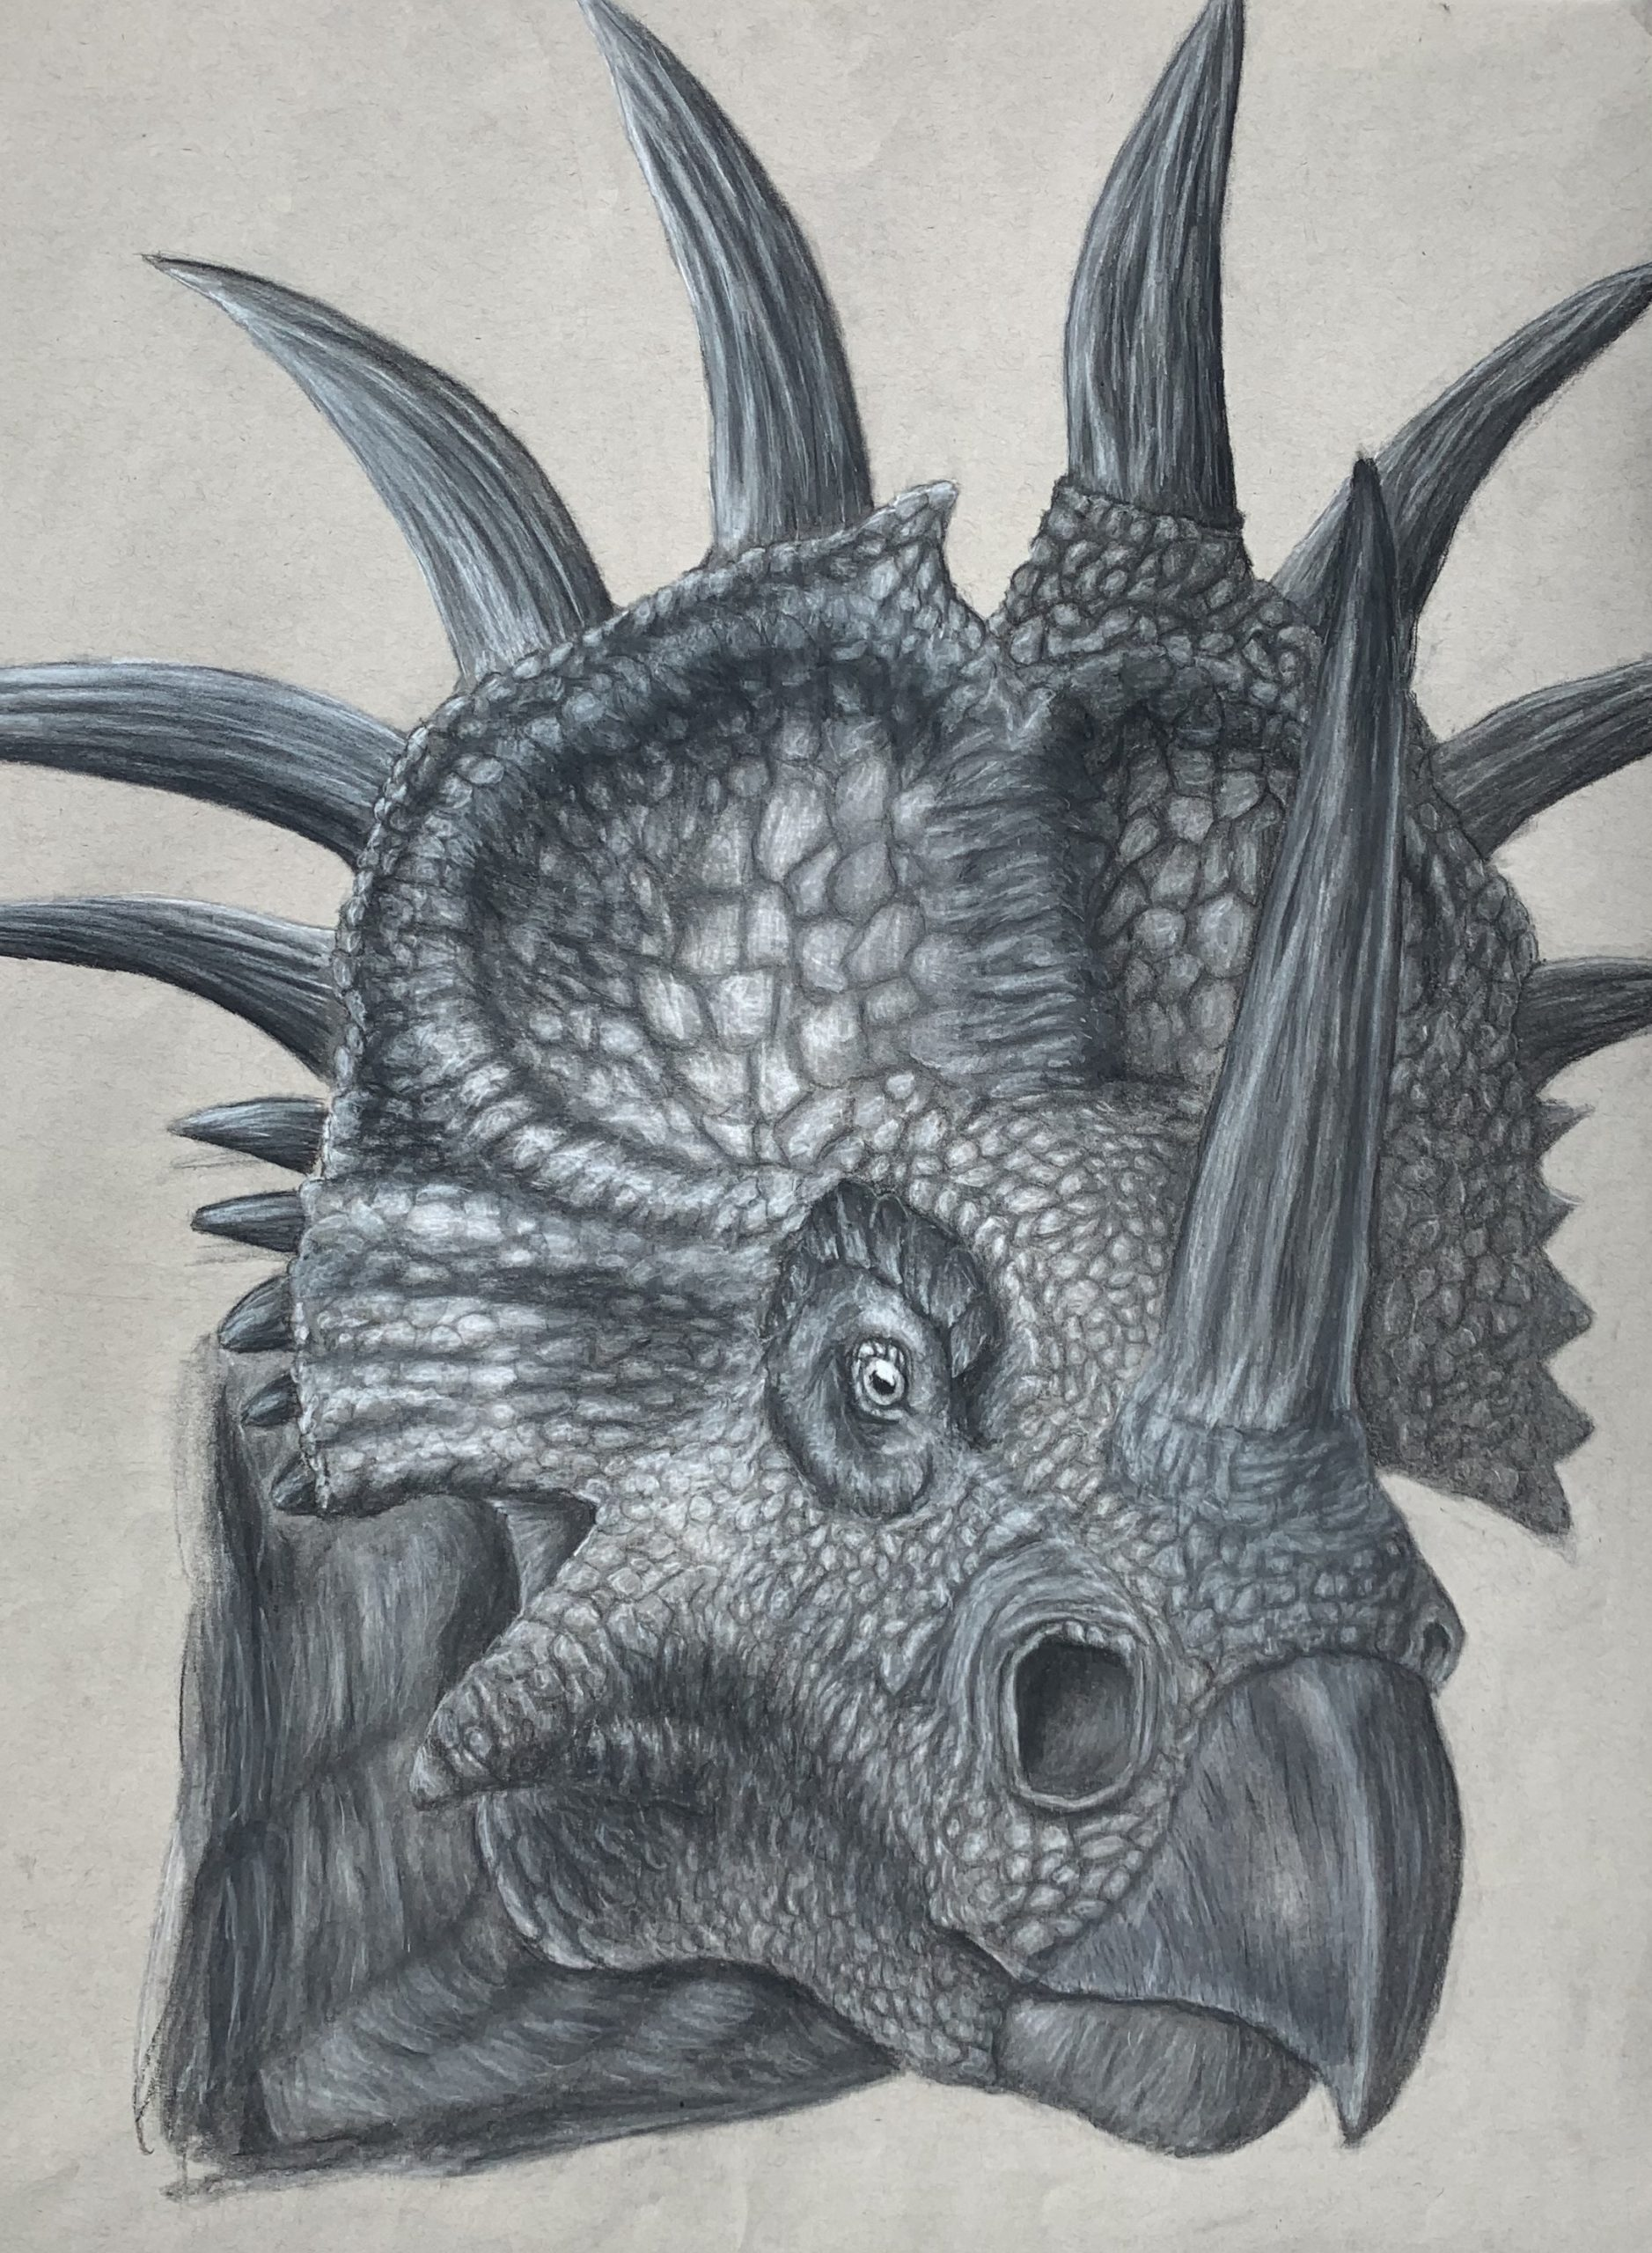 """3rd Place, Grades 11-12, """"Dinosaur"""" by Madison Charles, Charcoal"""